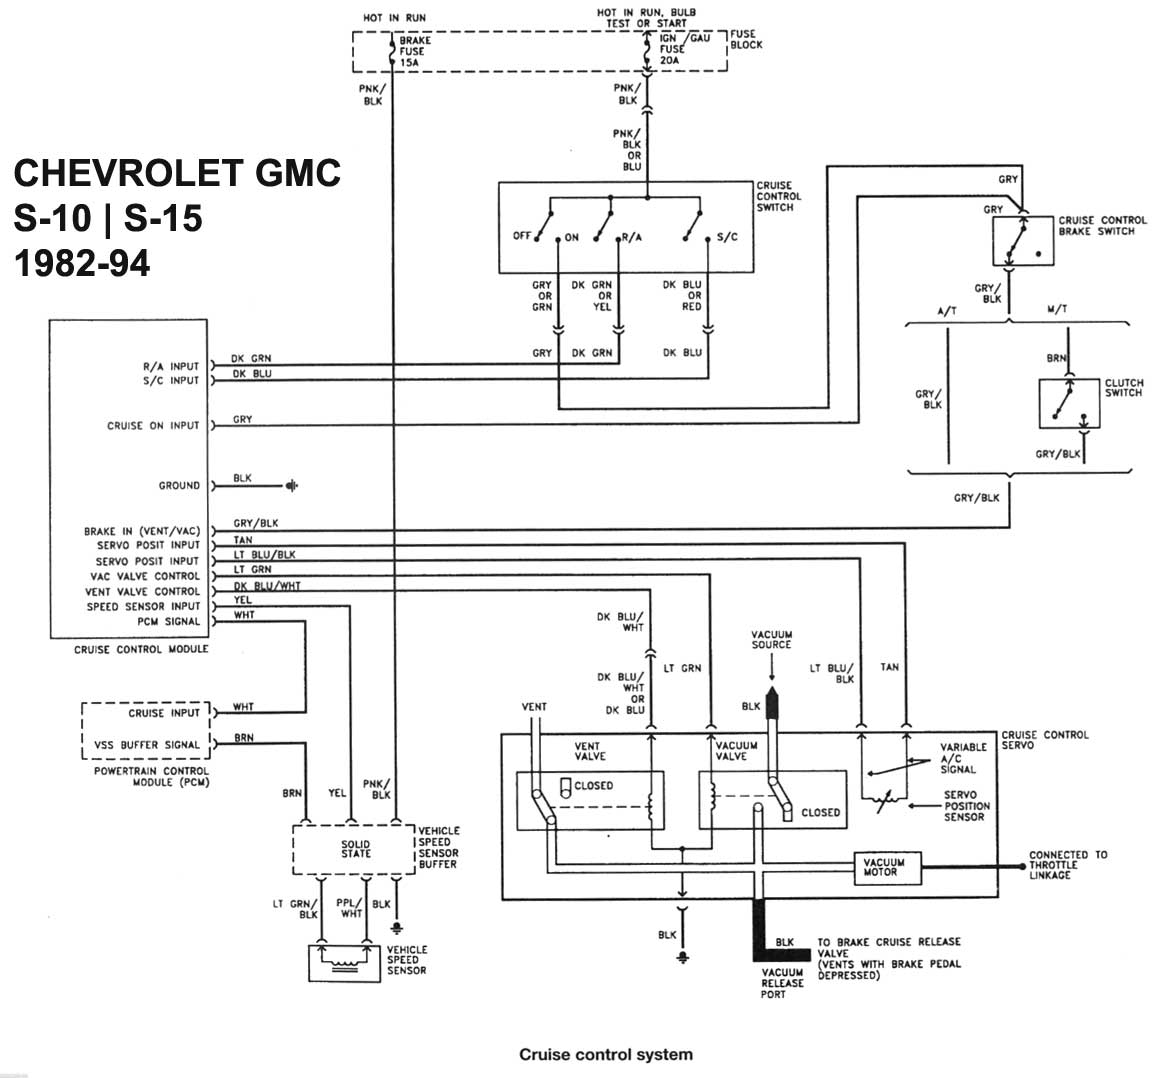 Chevy S10 Wiring Diagram Opinions About Stereo 1989 2003 For Radio